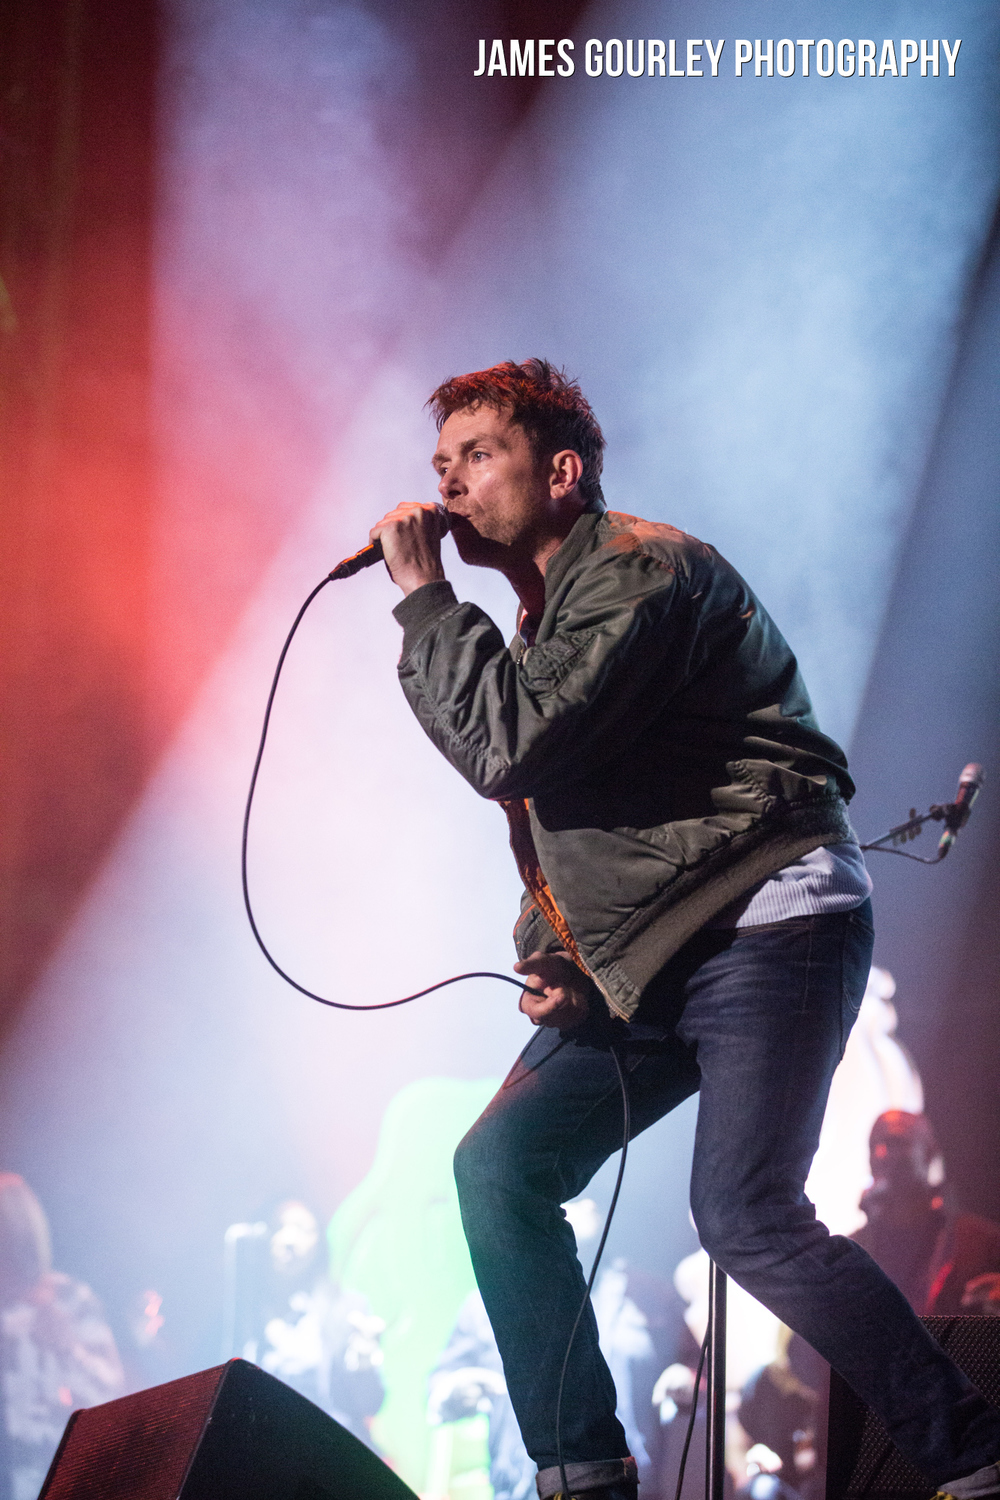 Damon Albarn of Blur performing on the Main Stage at the Isle of Wight Festival 2015